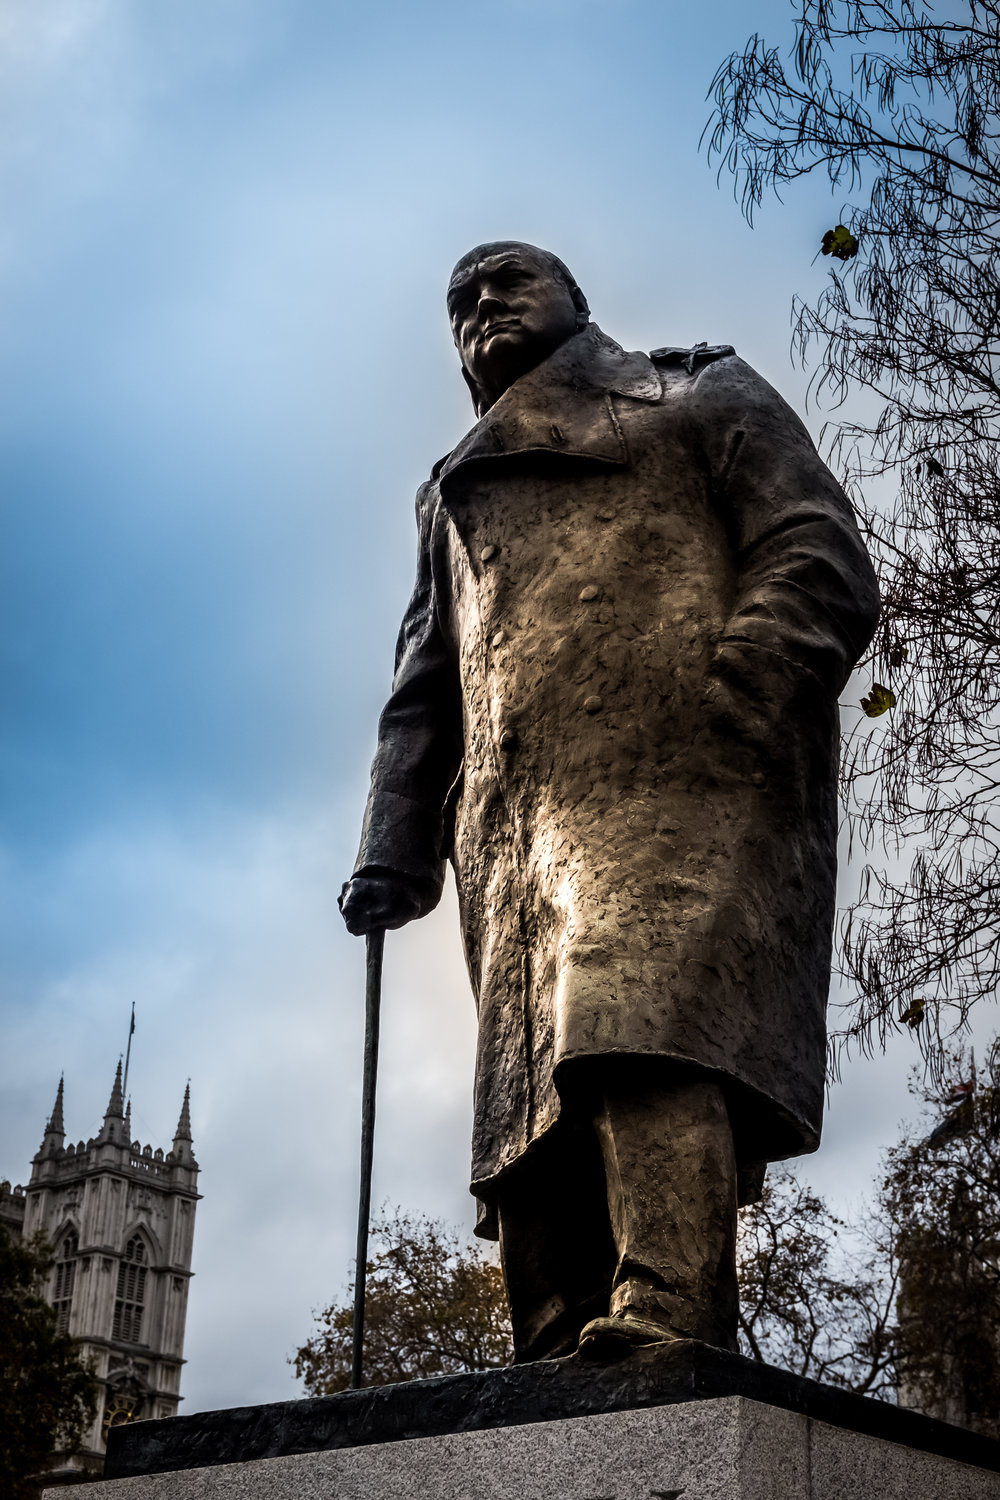 Our very own - leader - Sir Winston Churchill